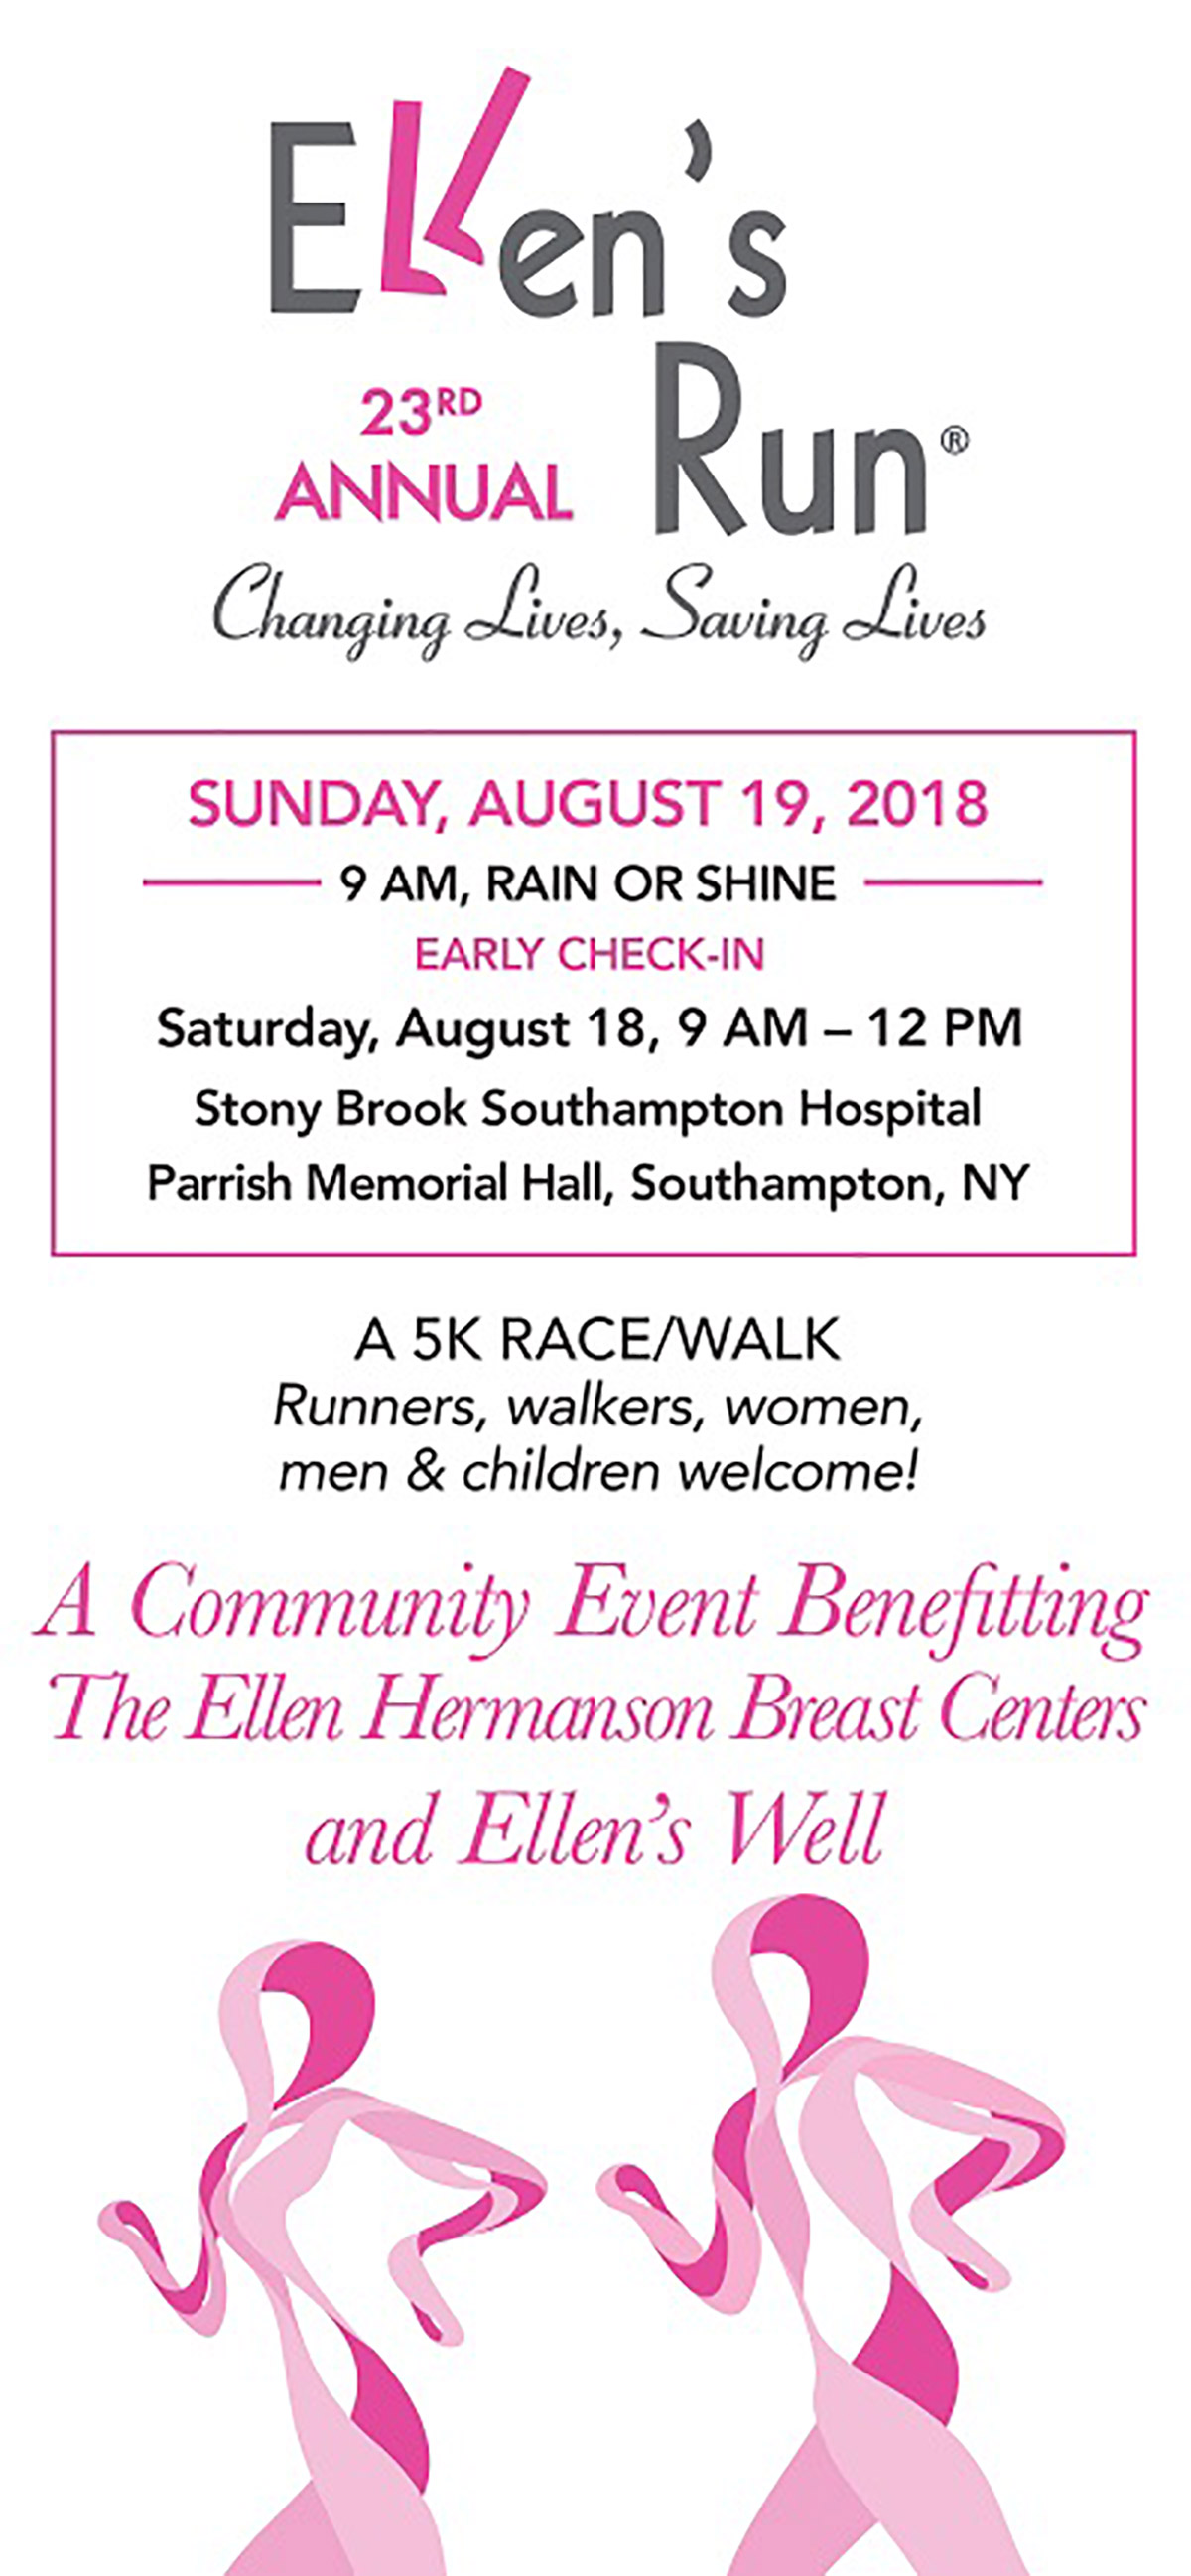 2018 23rd Annual Ellens Run